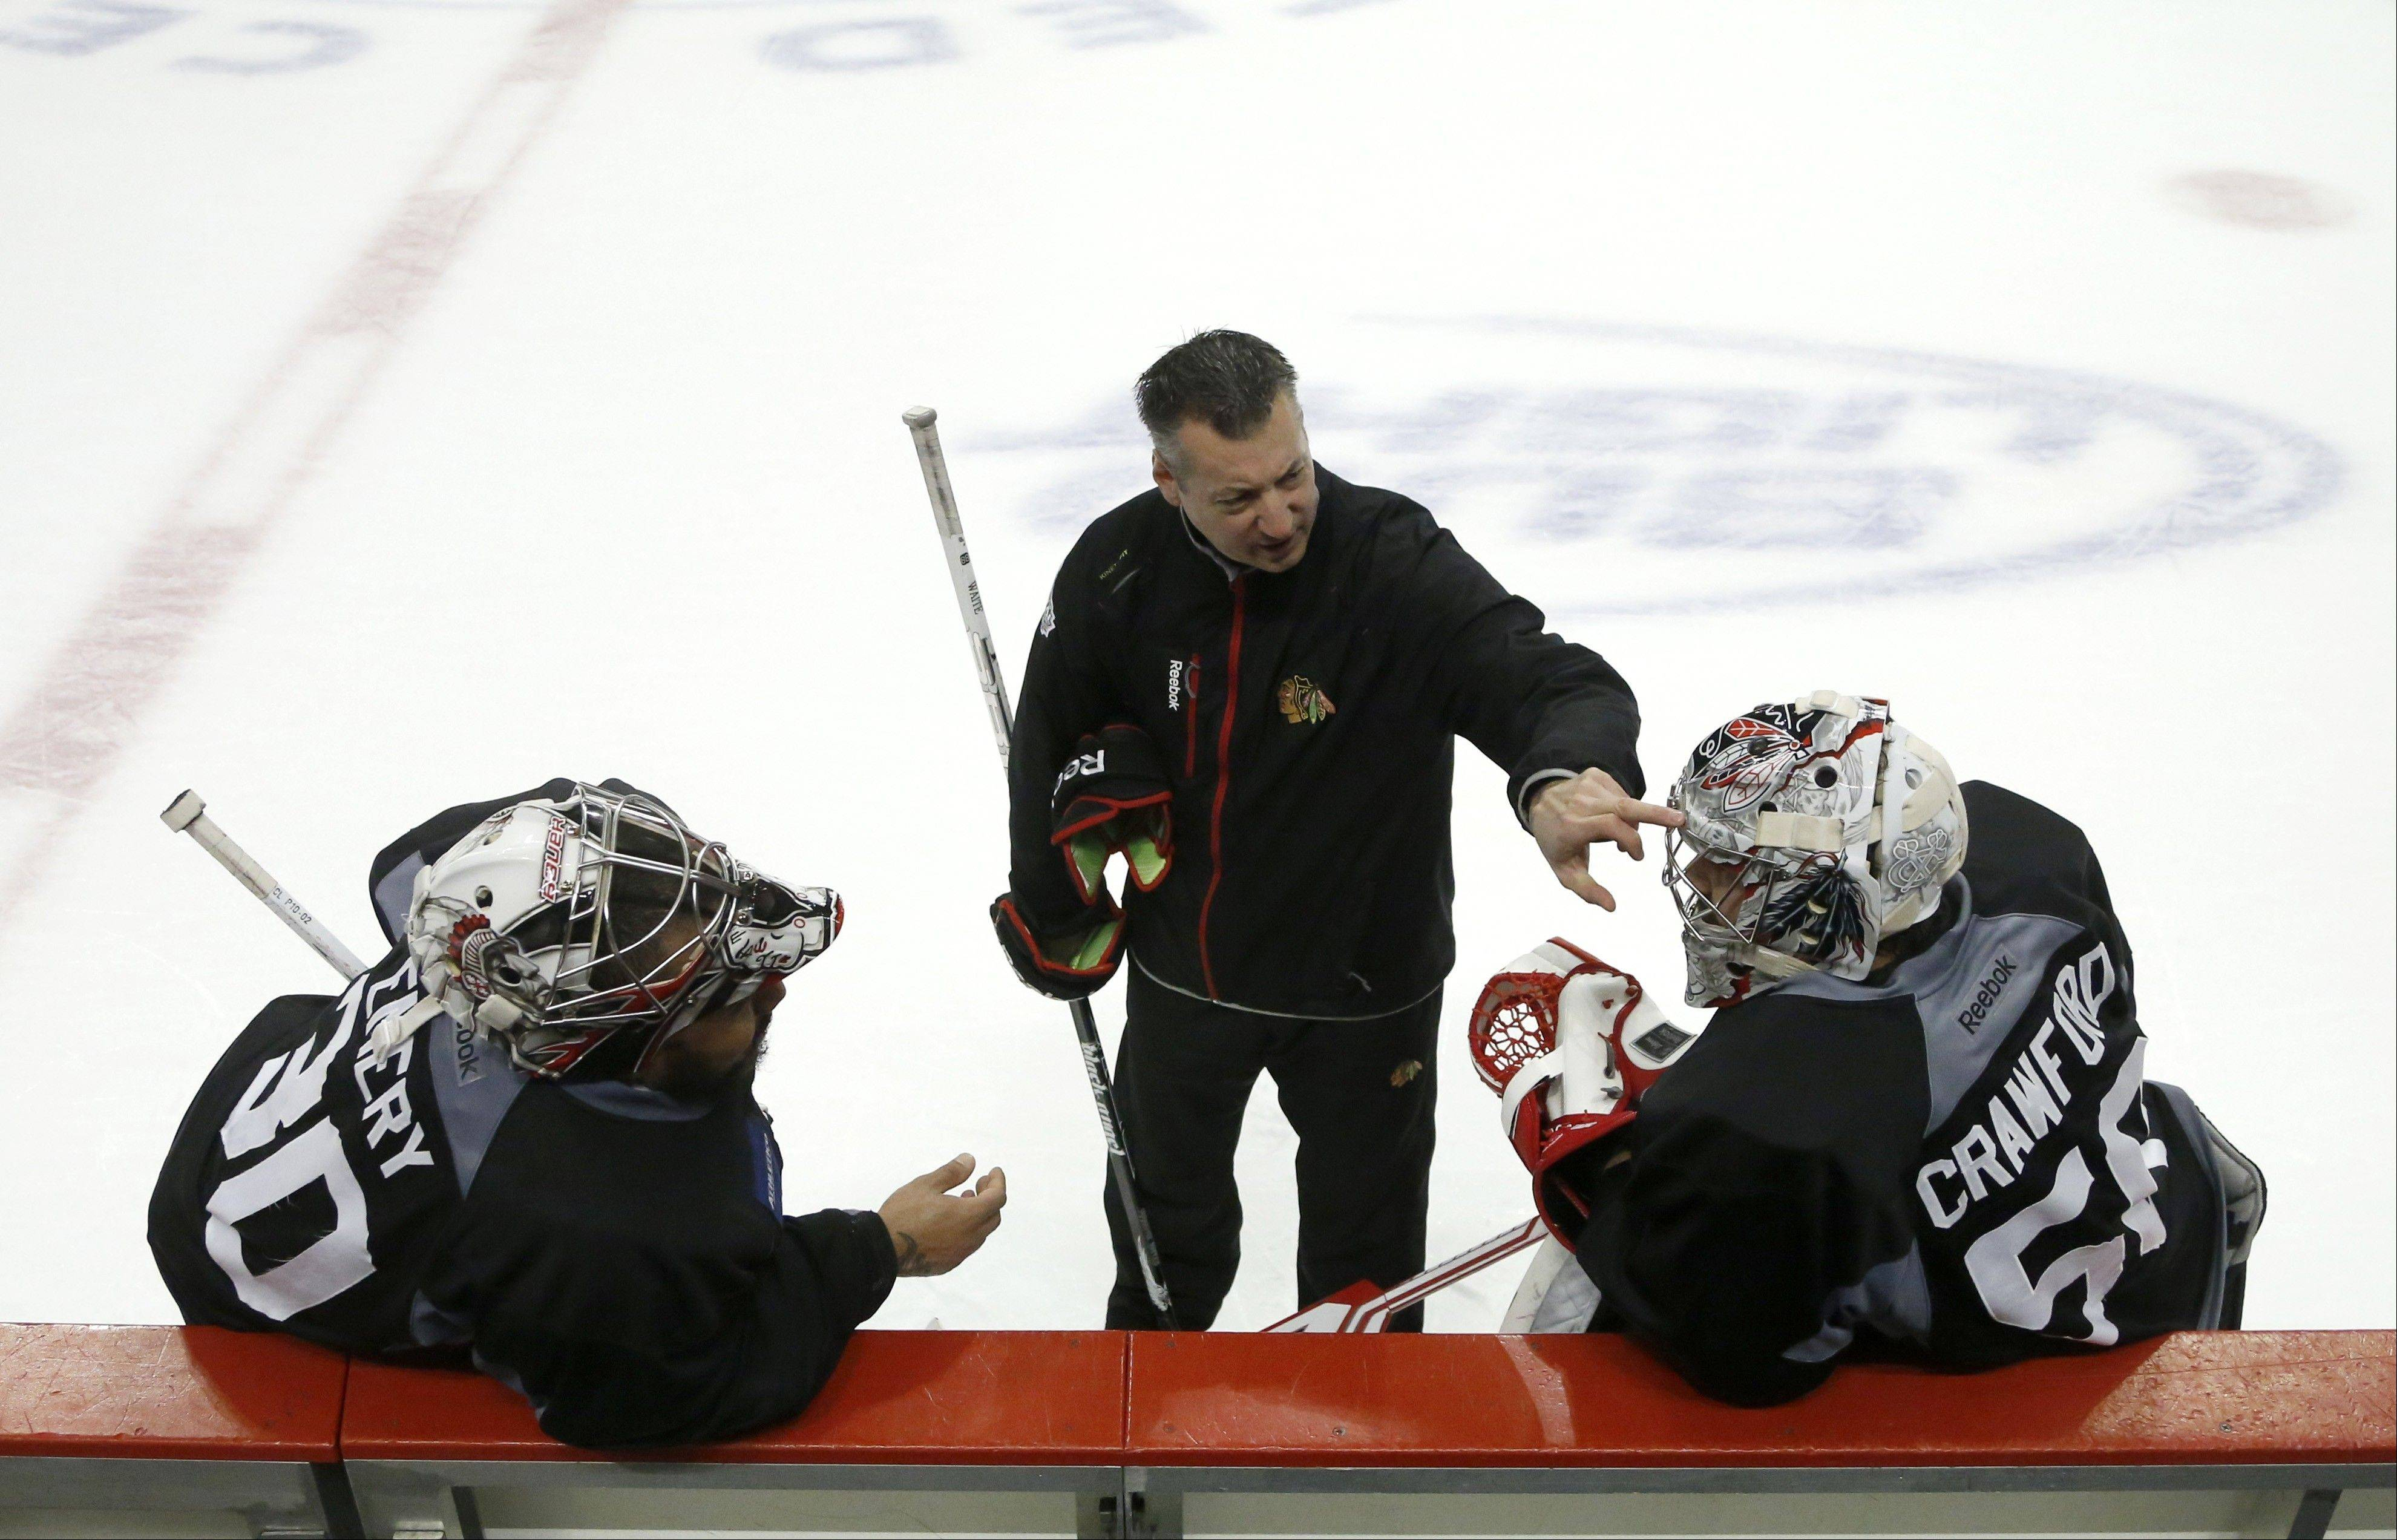 Blackhawks goalie coach Stephane Waite, center,is leaving the team after 10 seasons to join the Montreal Canadiens, officials announced Thursday.